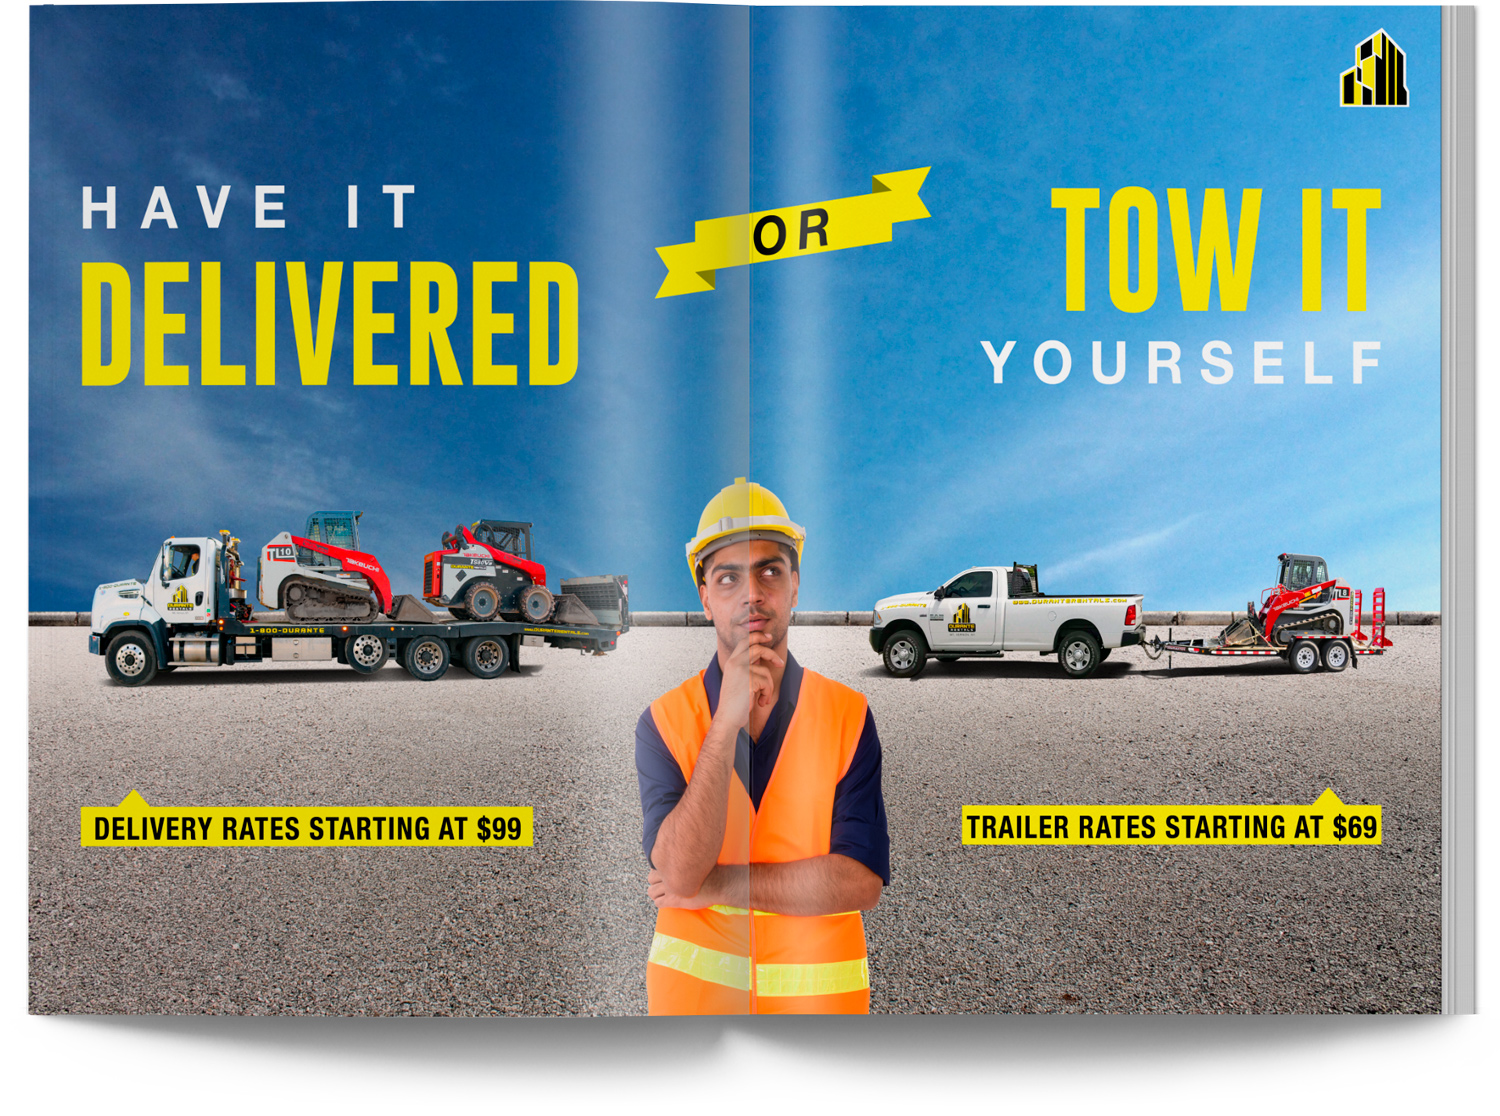 Construction Equipment Towmaster Trailers and Delivery Catalog Design